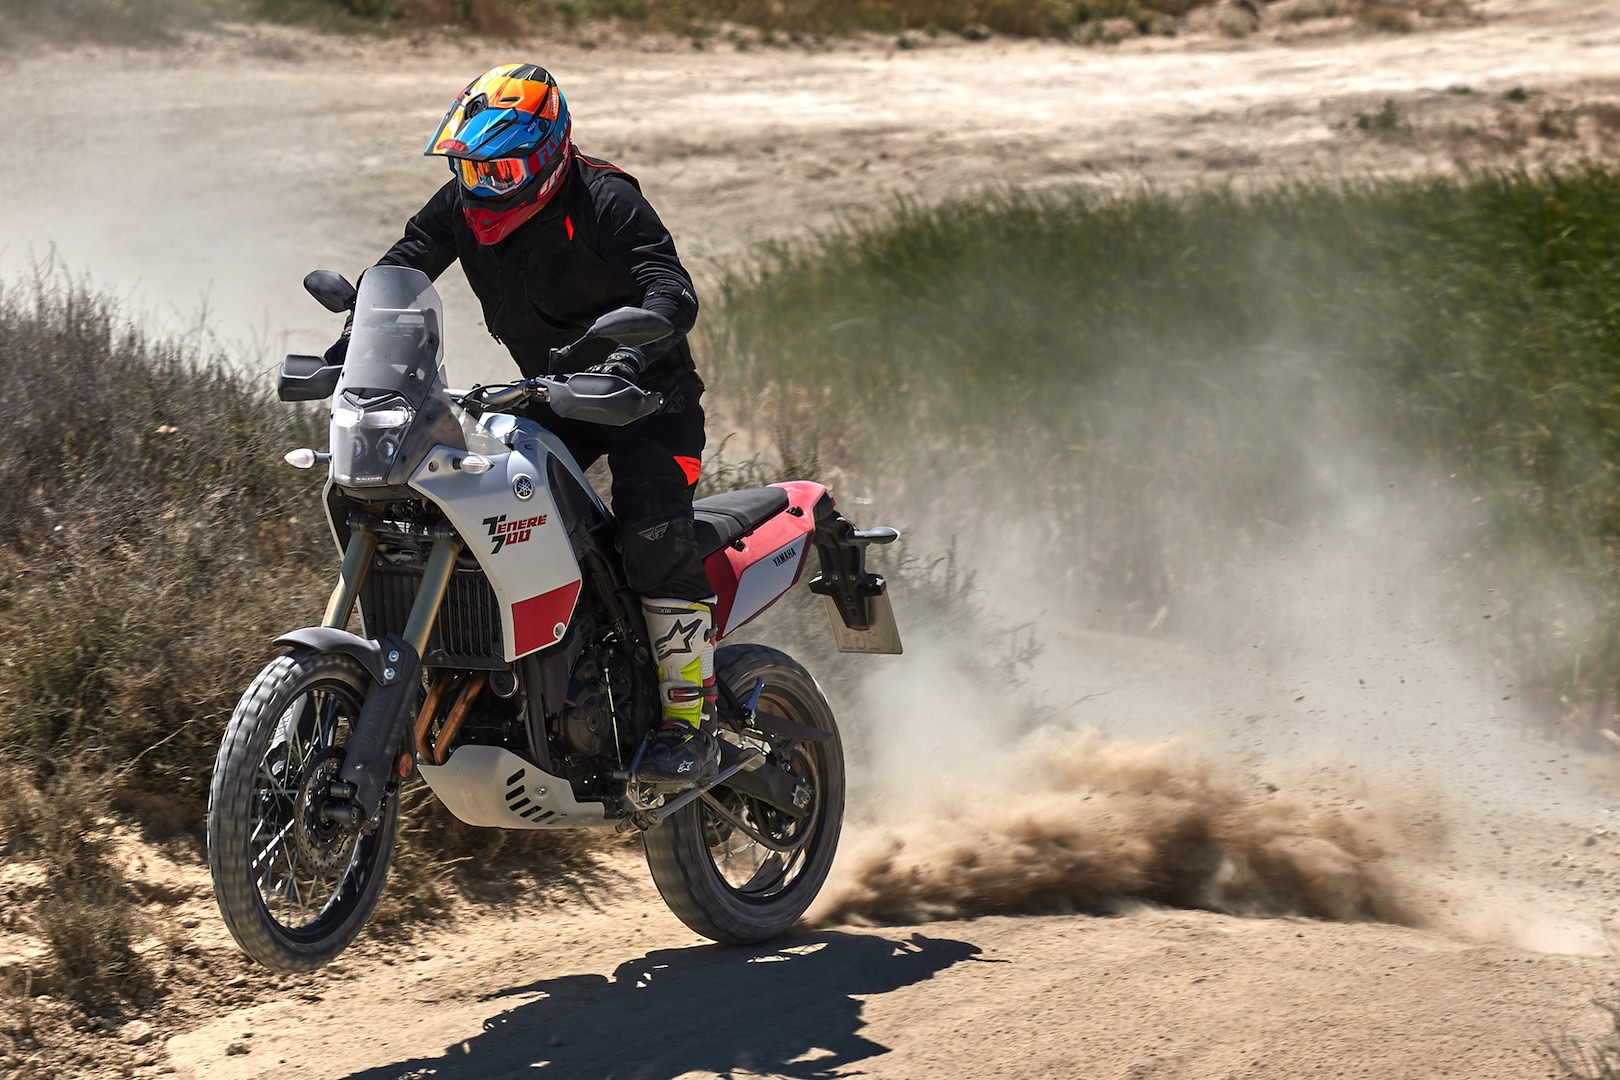 2020 Yamaha Ténéré 700 Review (31 Fast Facts)